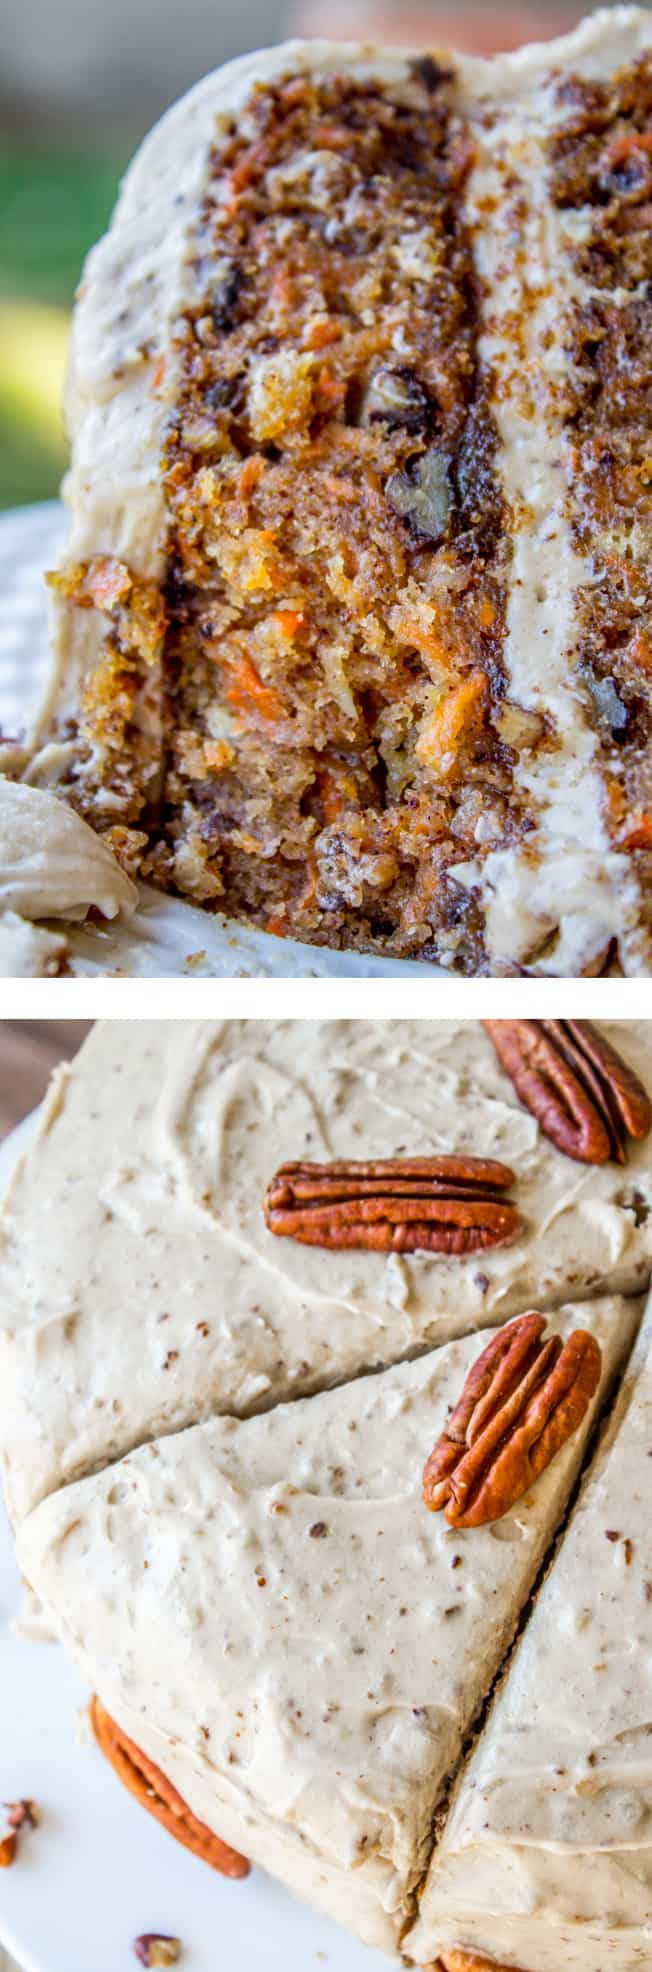 This Irresistible Carrot Cake Is Covered With A Thick Layer Of Cream Cheese Maple Pecan Frosting Crushed Pineapple Makes It Super Moist